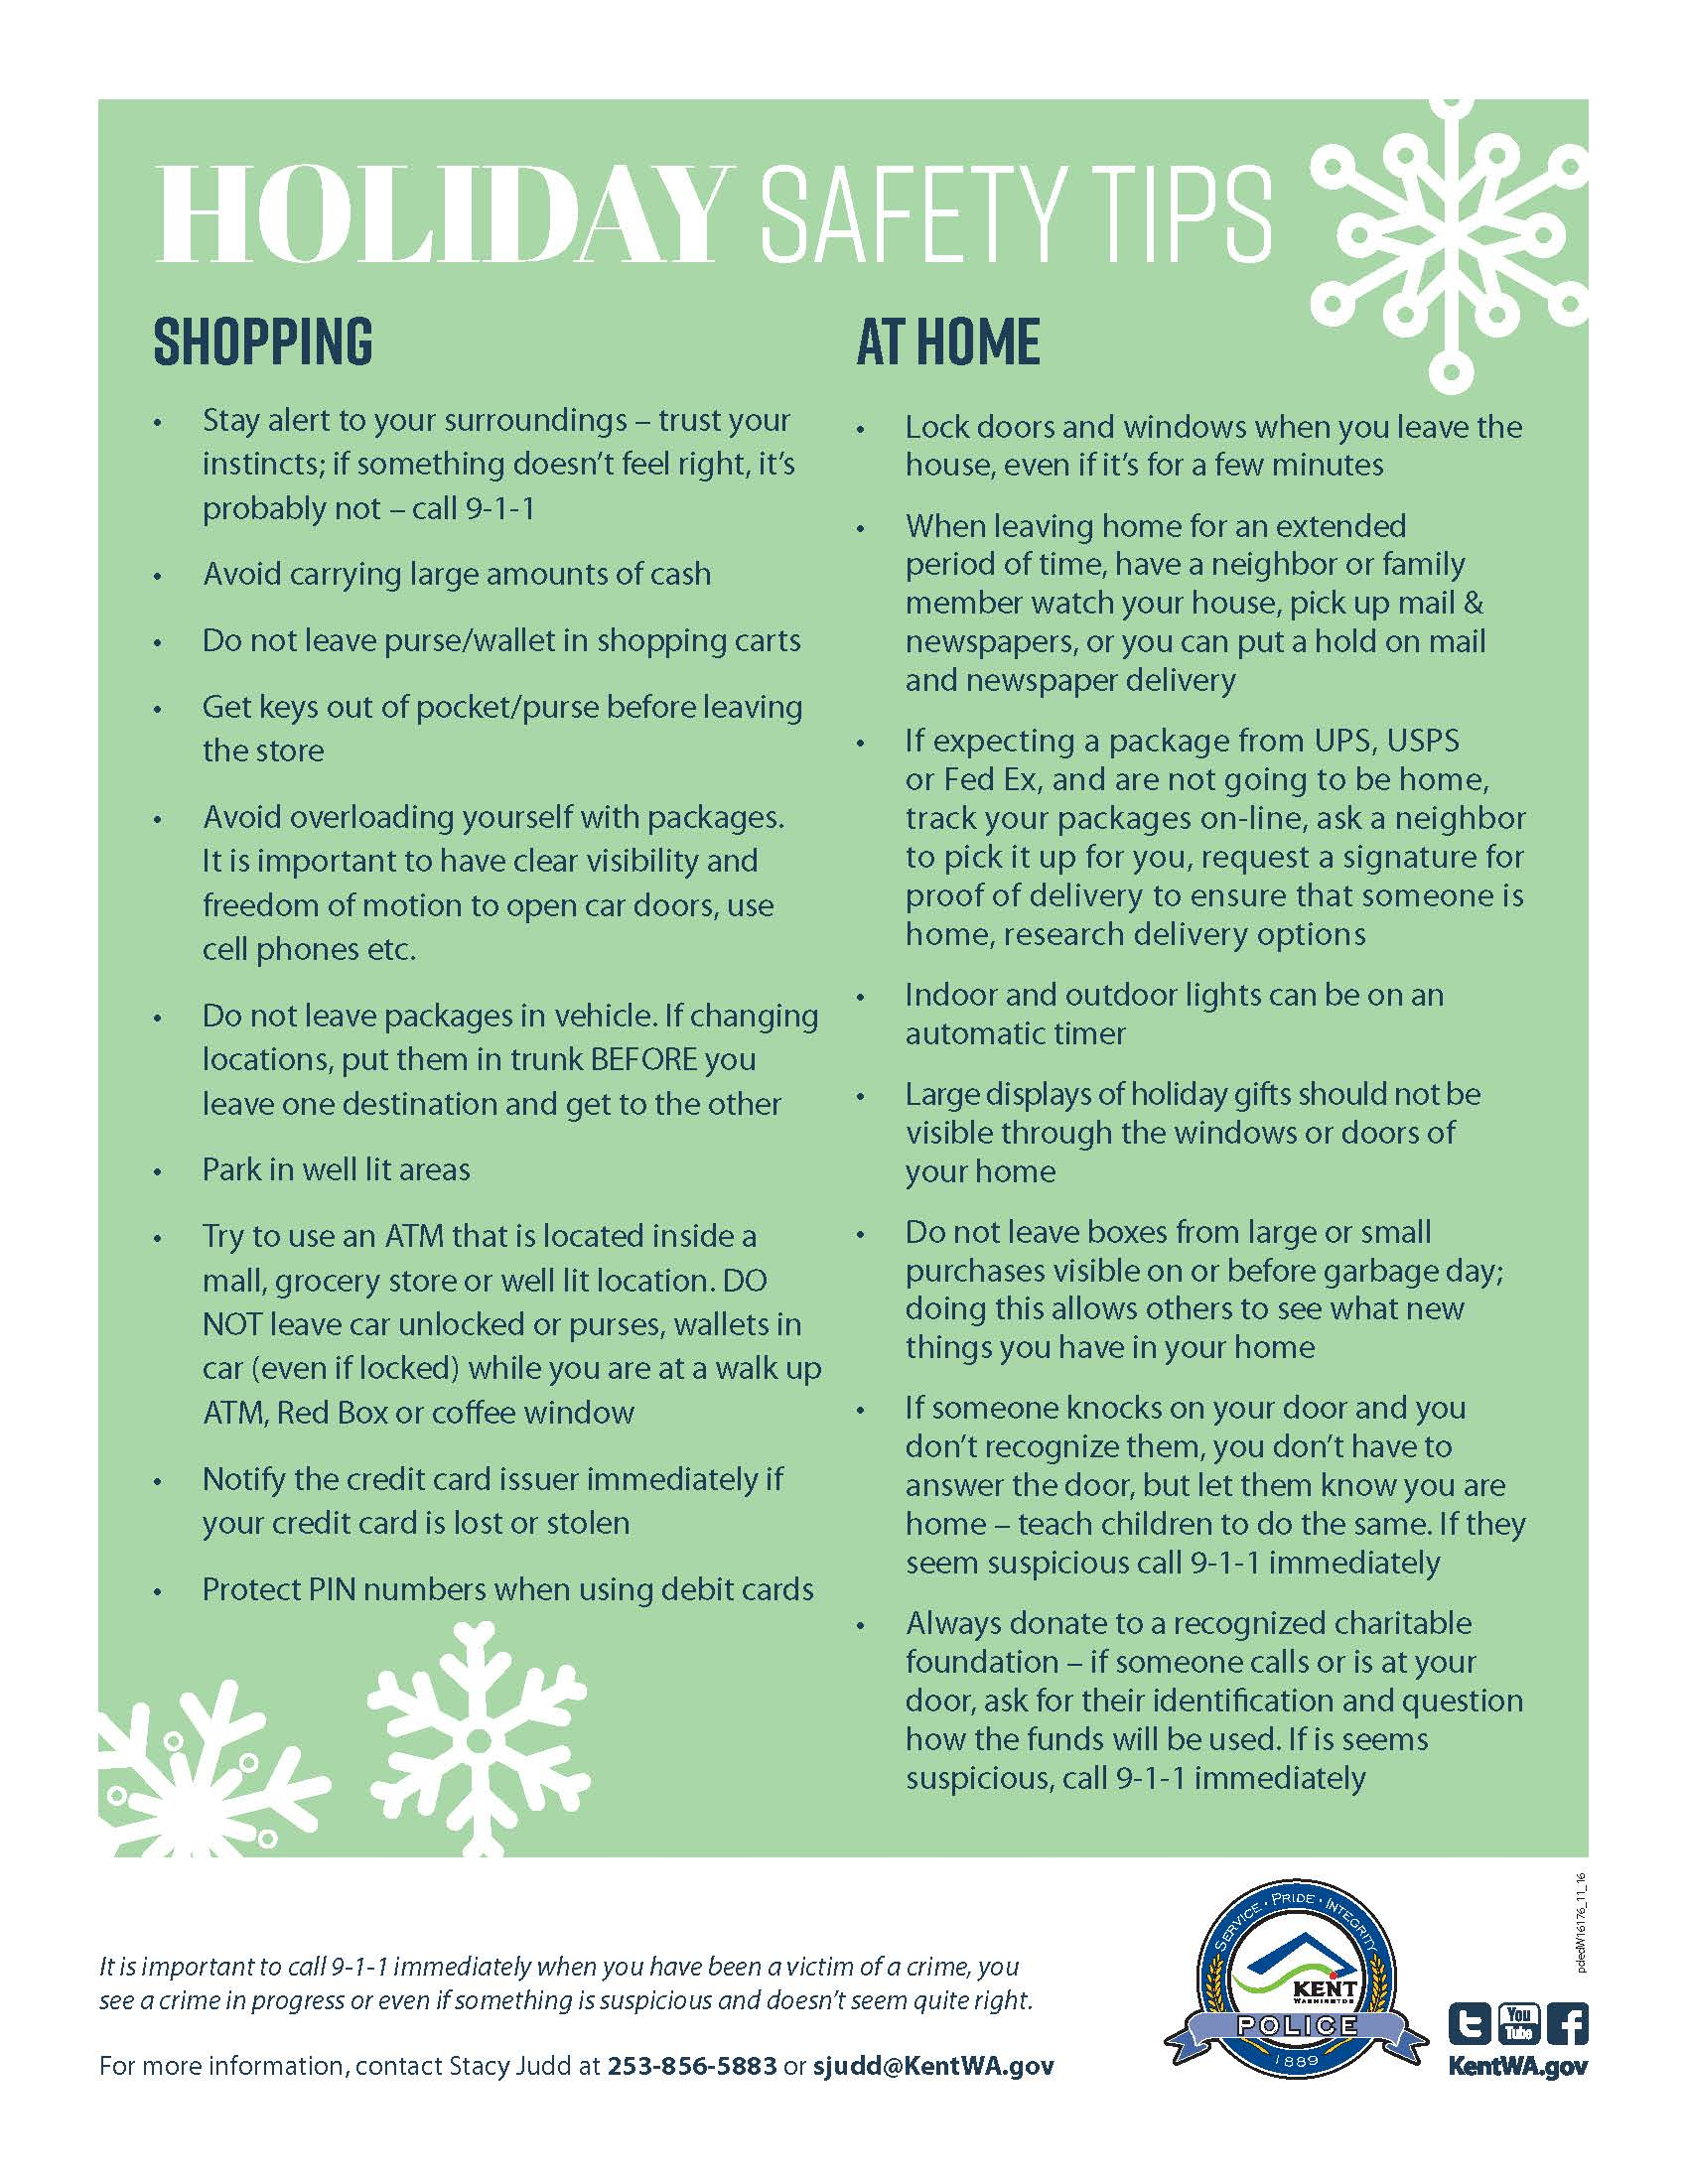 Stay Safe this Holiday Season with Safety Tips from the City of Kent, Washington